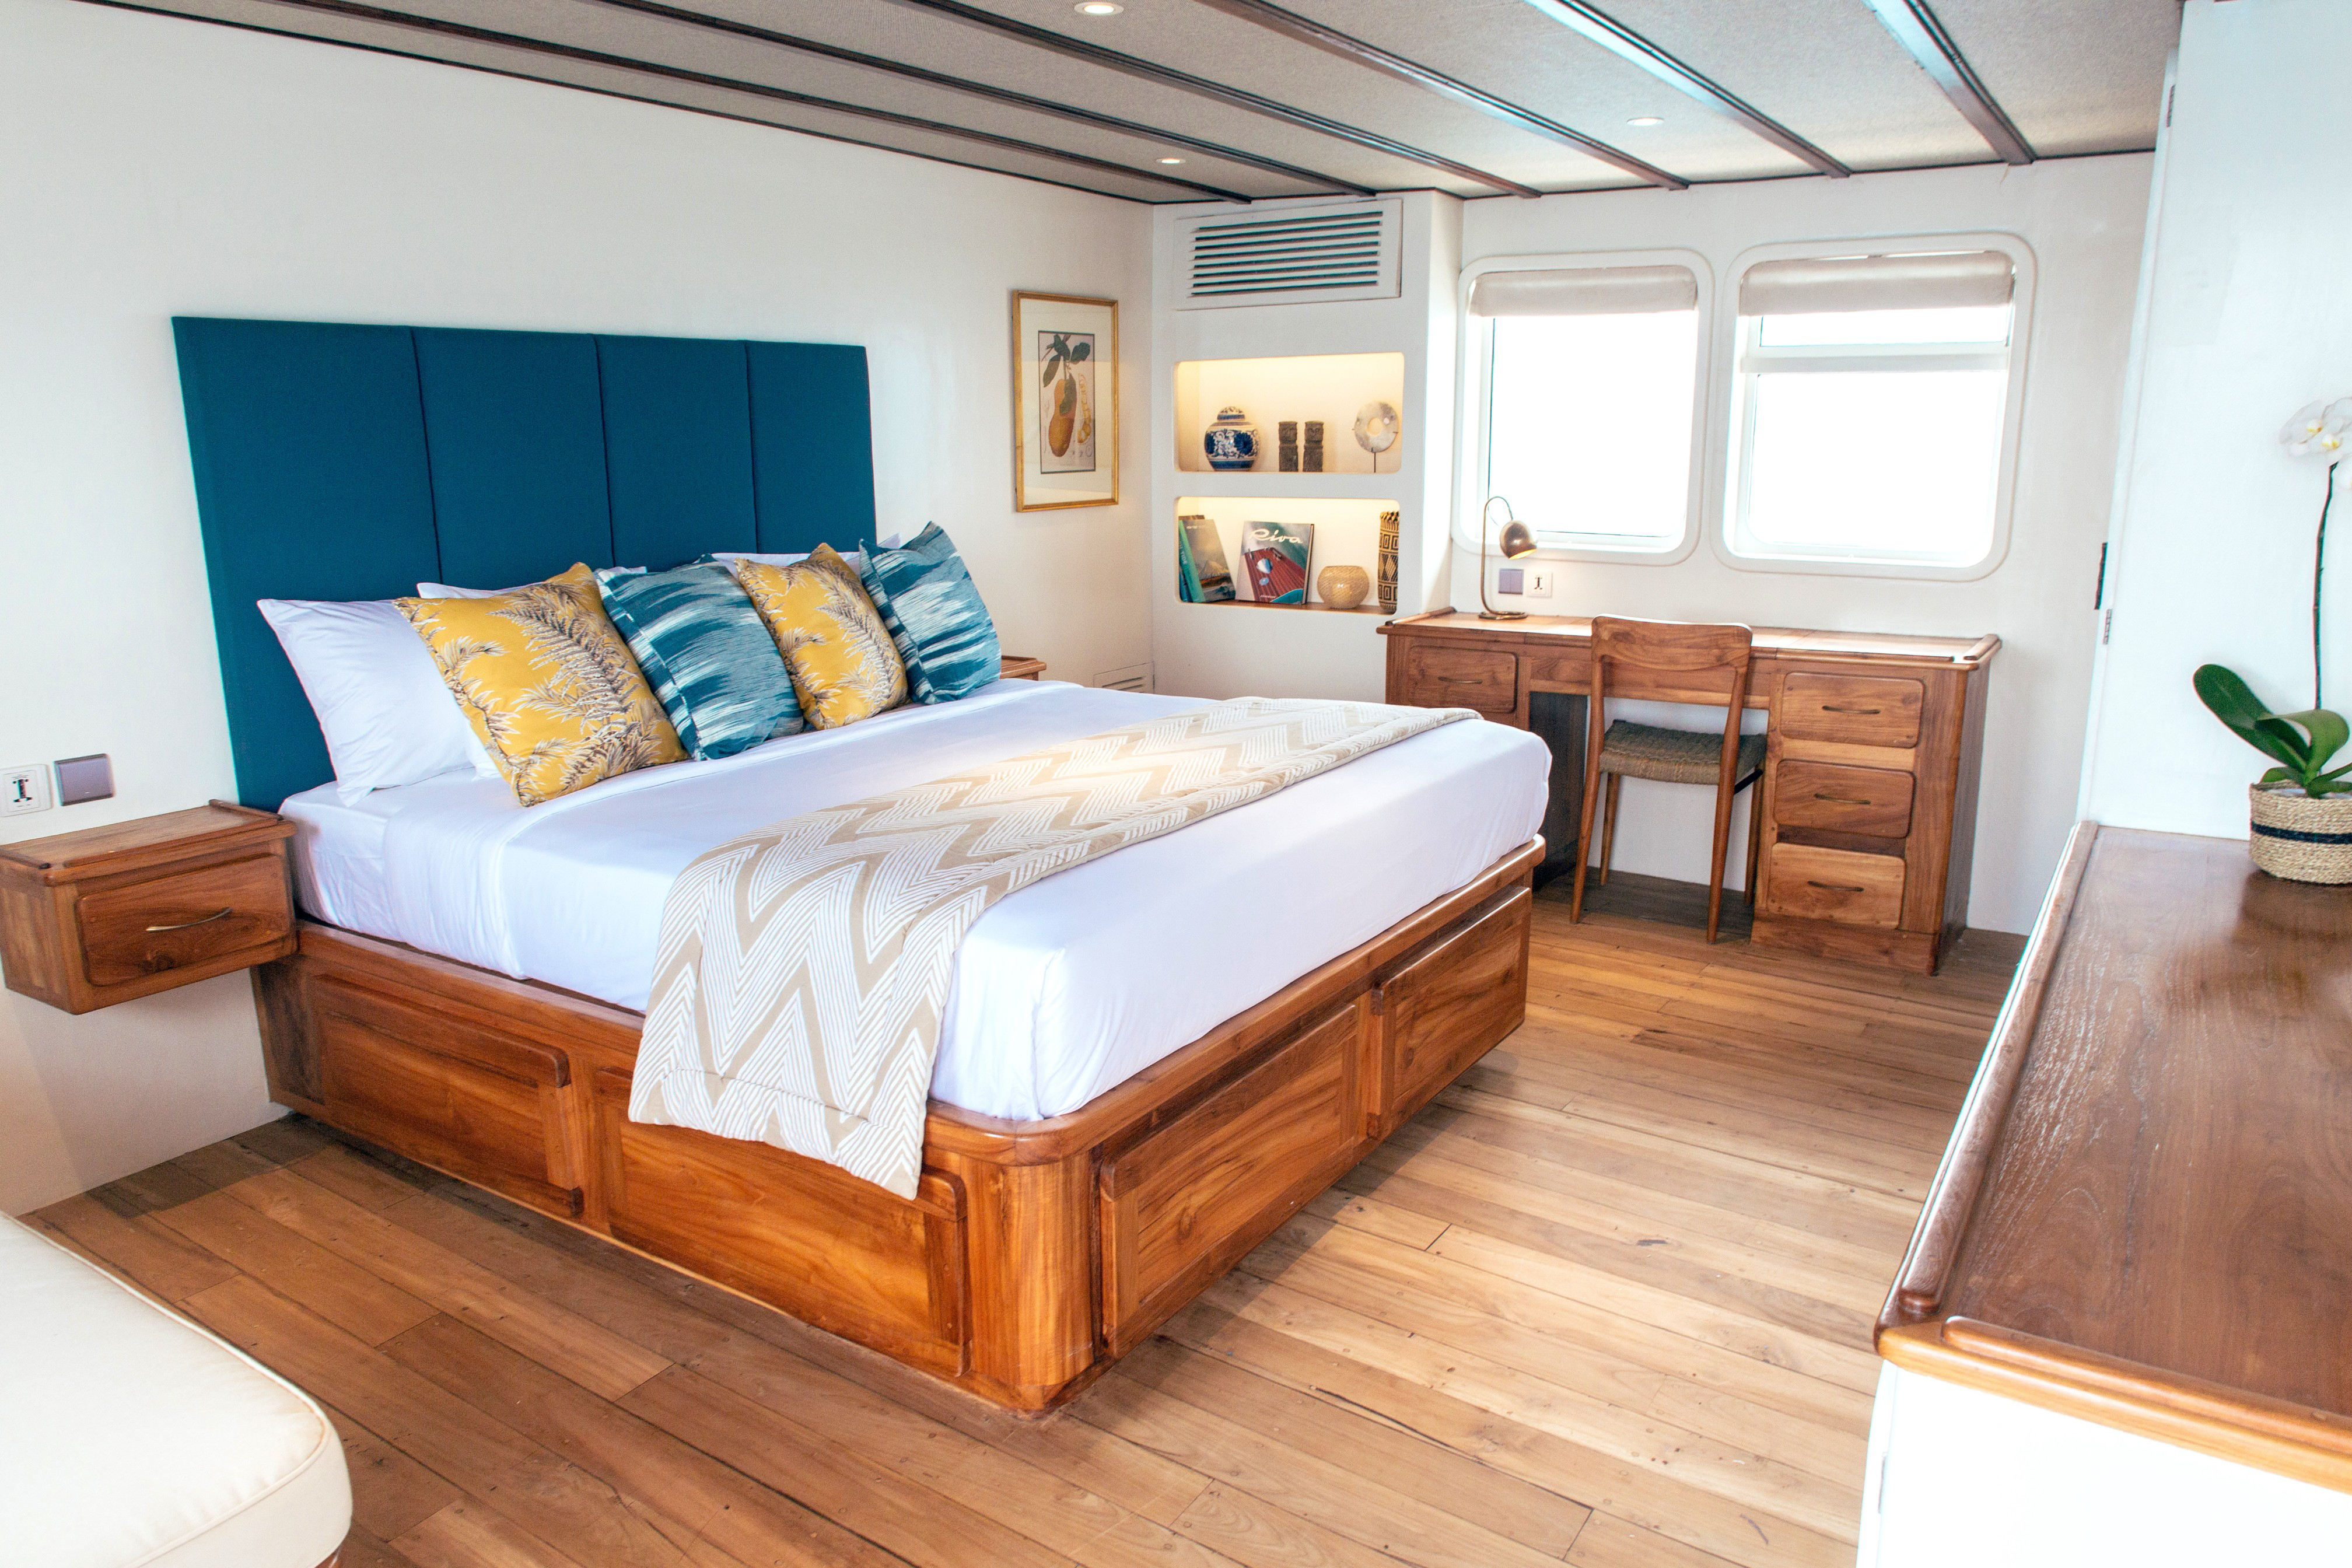 master bedroom onboard a luxury yacht in tasteful light colours and modern teak.